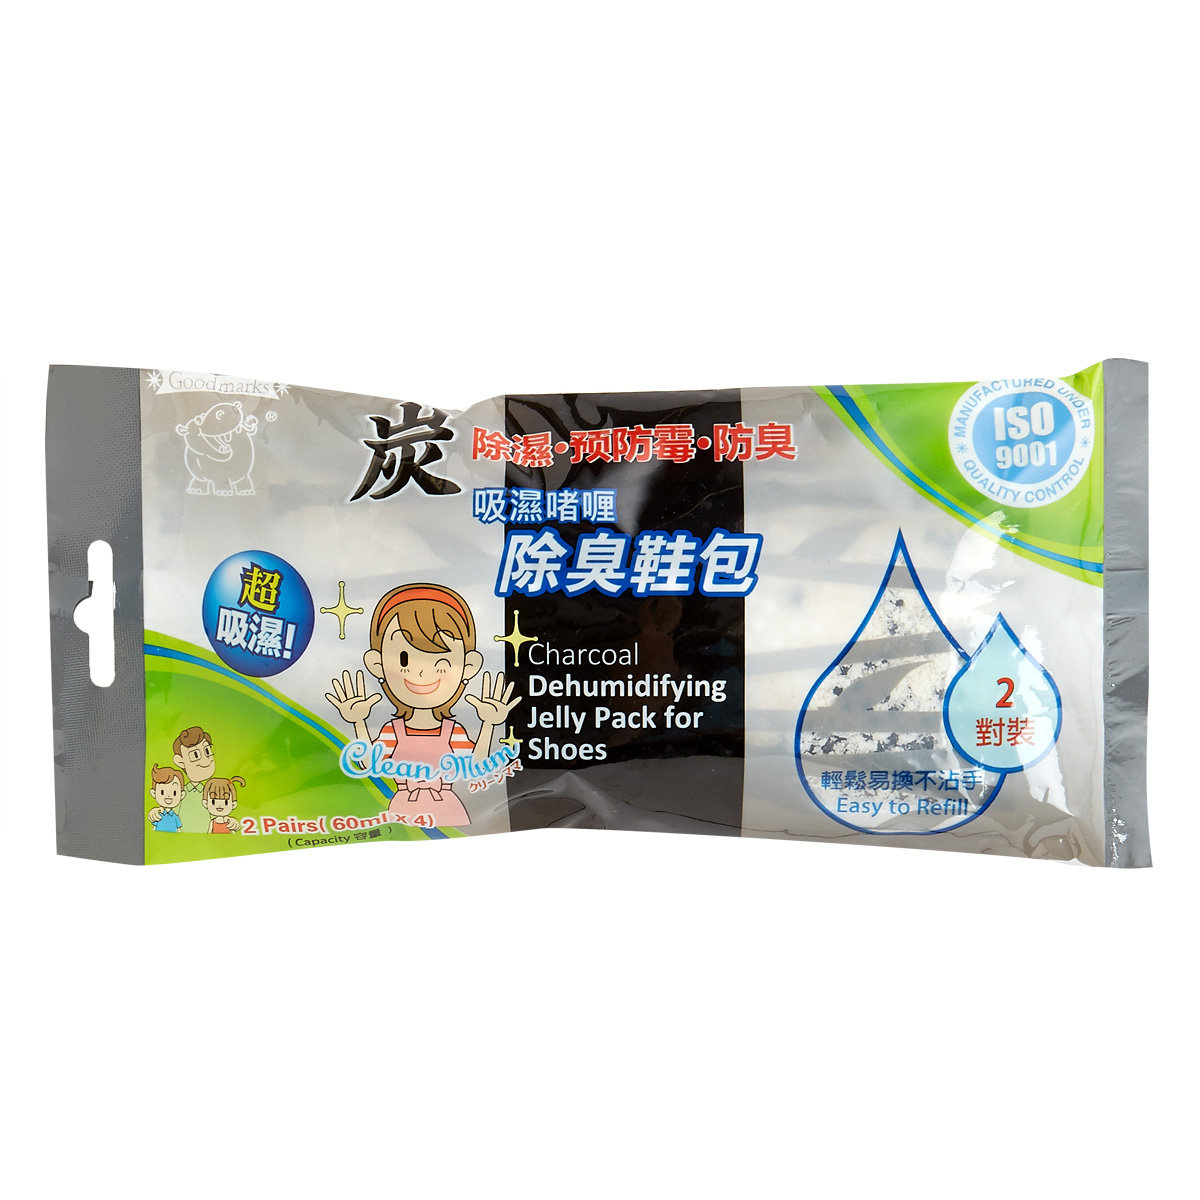 Charcoal Dehumidifying Jelly Pack for Shoes